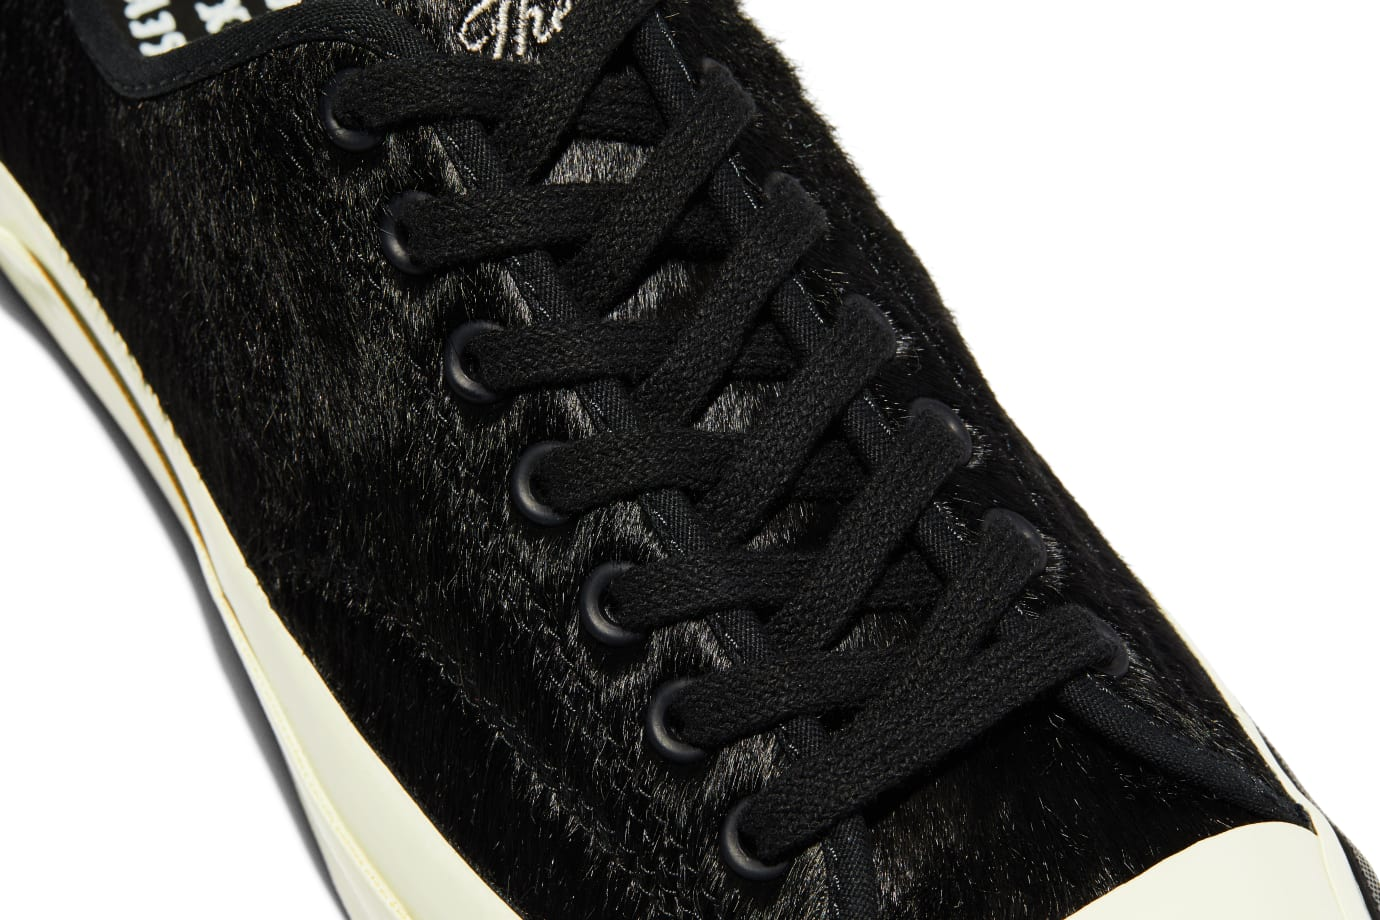 BornxRaised x Converse Jack Purcell 'Black' (Laces)